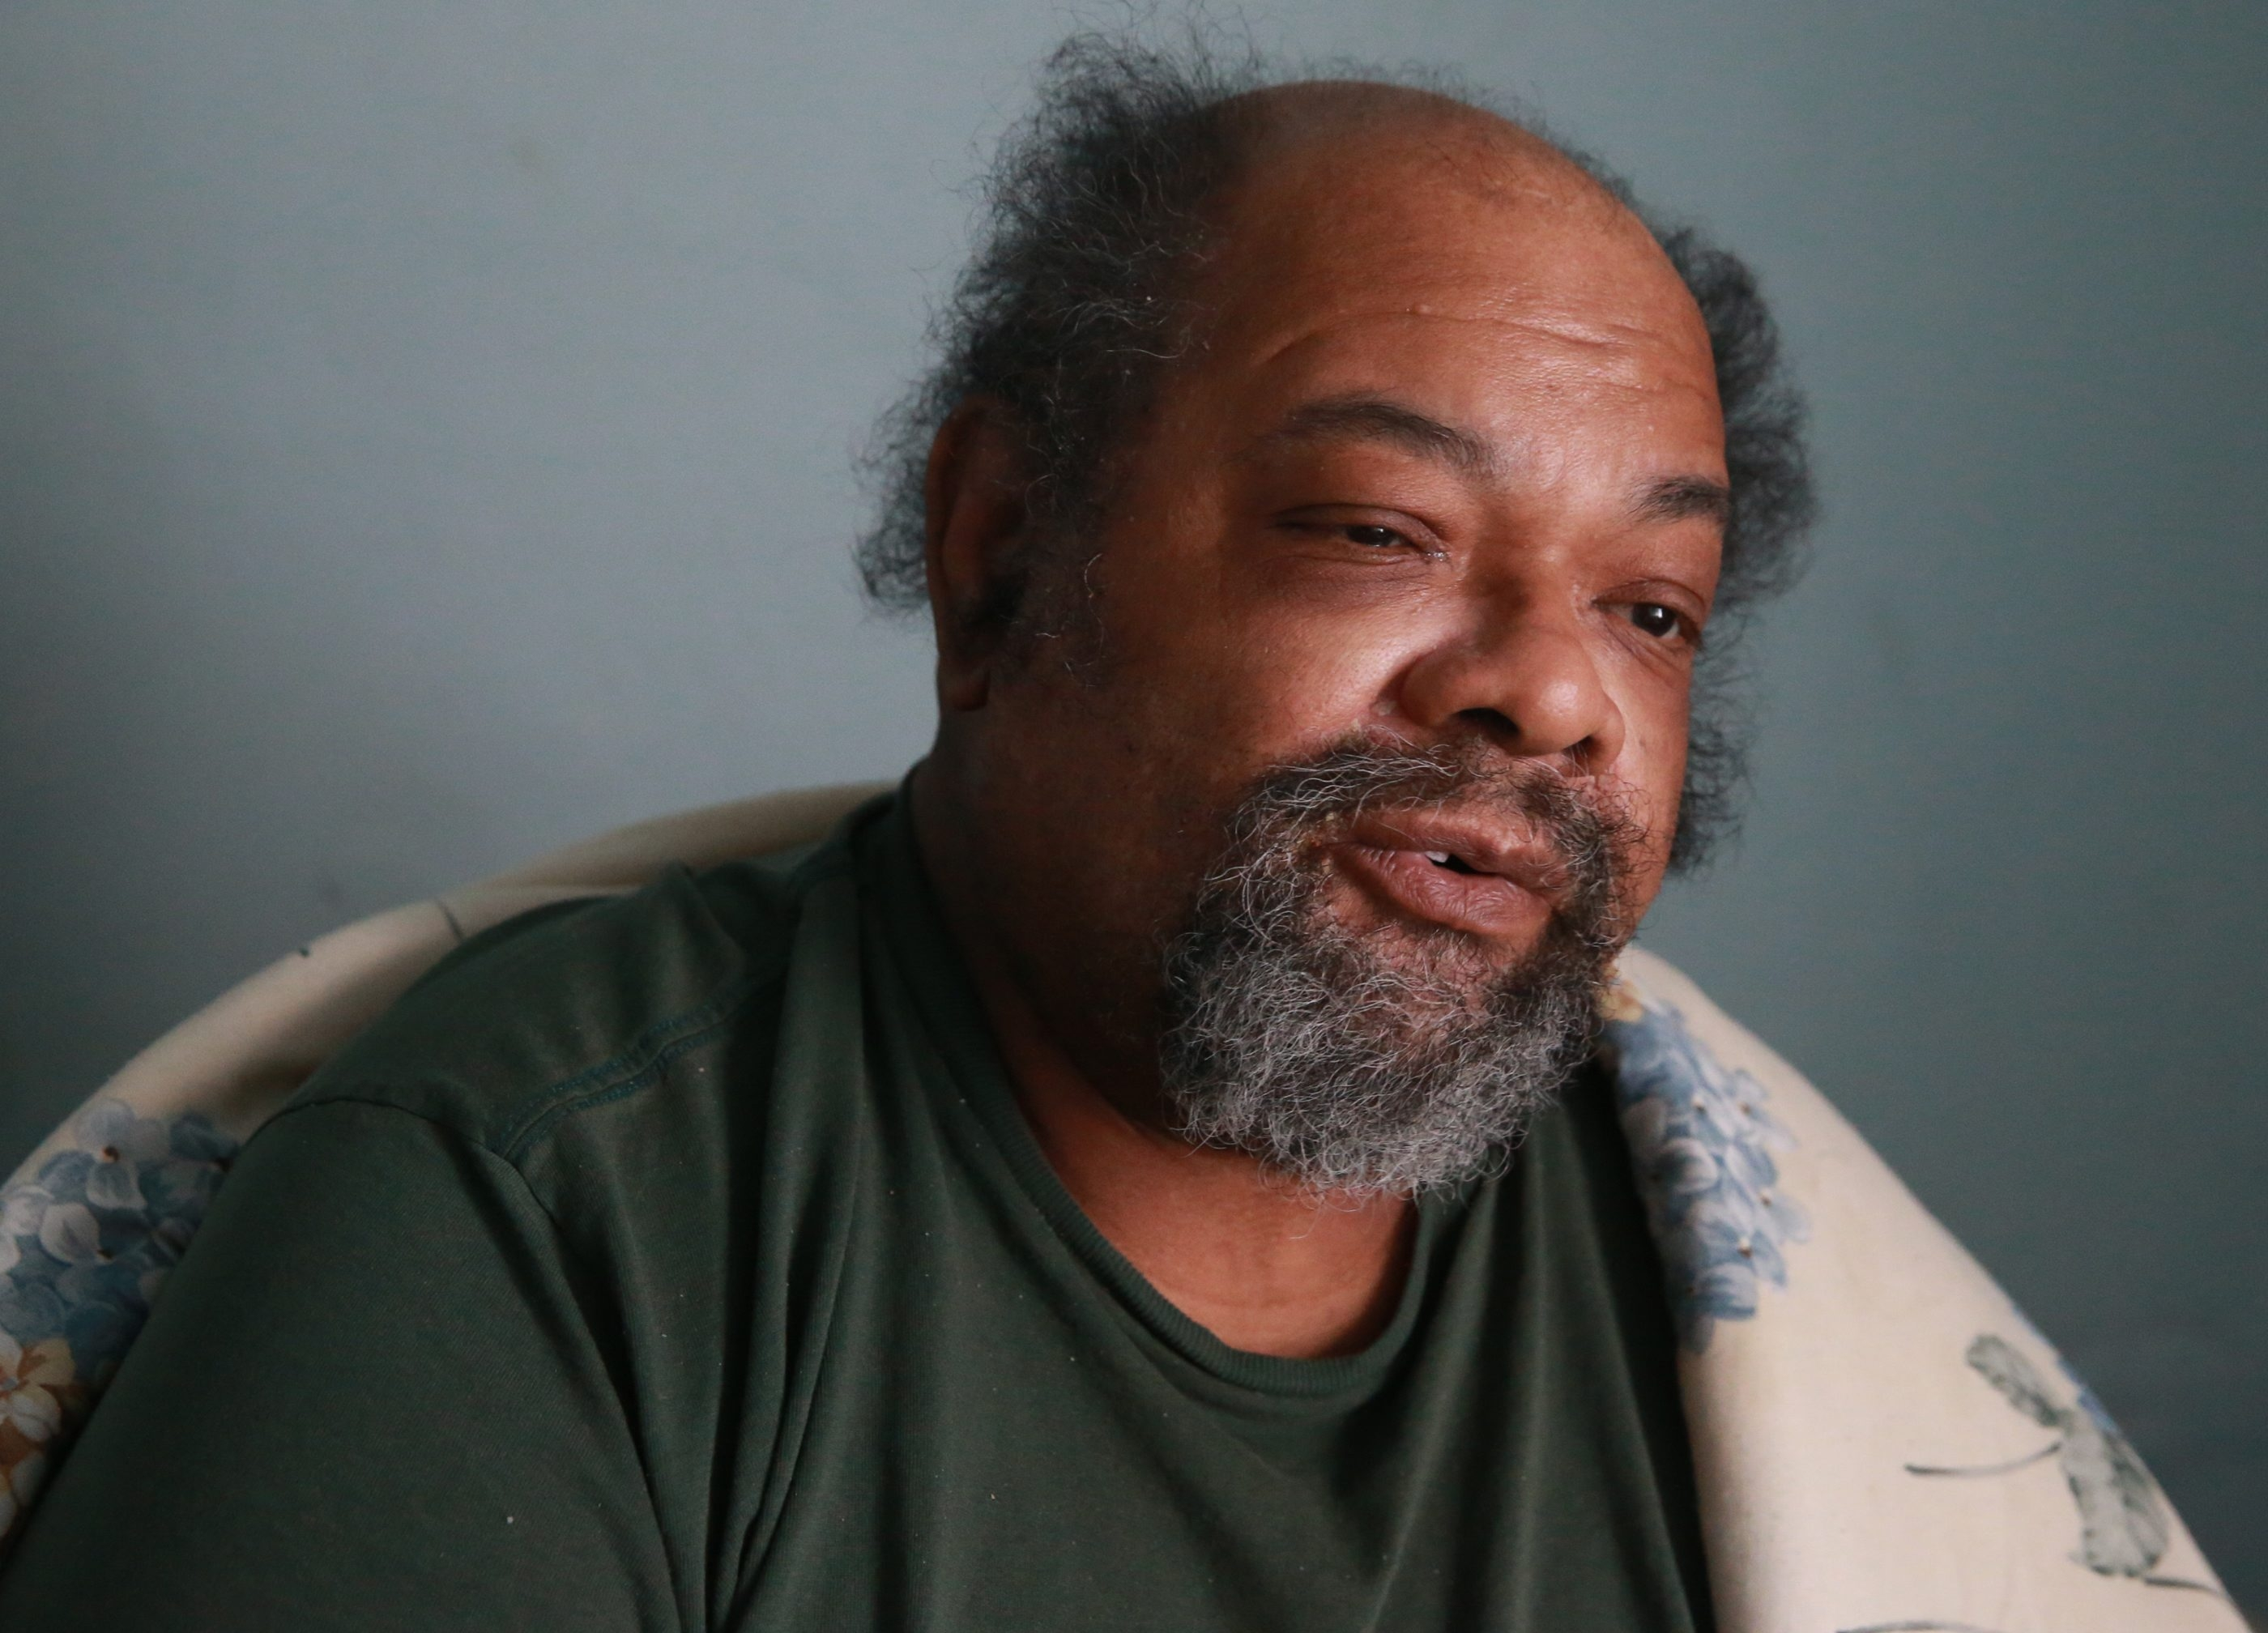 Robert Lewis, who fled his Langmeyer home, has tem- porary housing from Back to Basics Outreach Ministries.